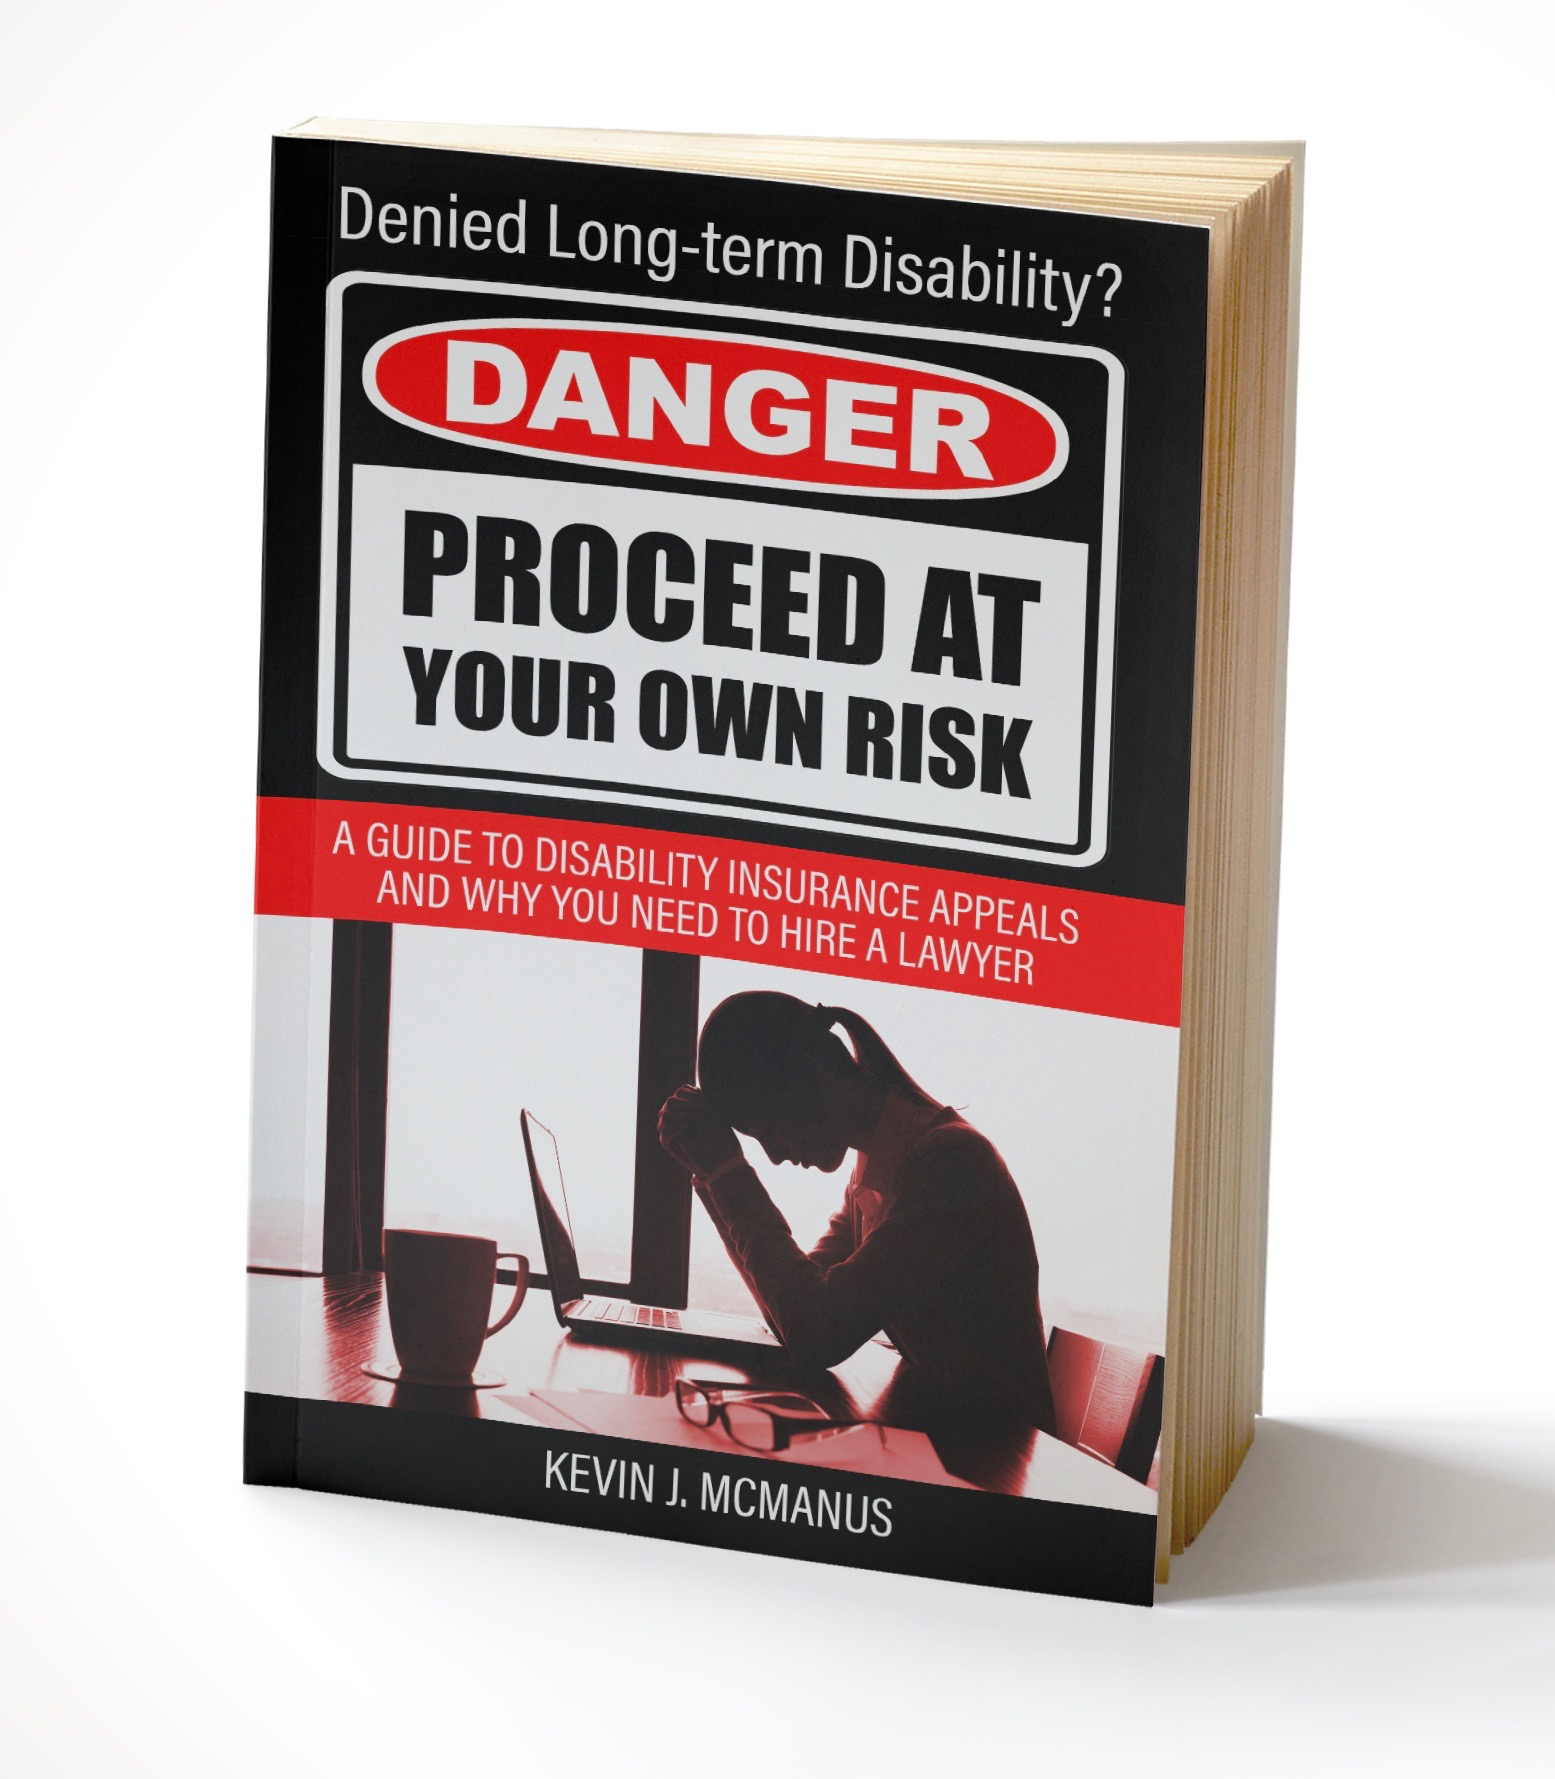 long term disability guide book on what to do after a denial